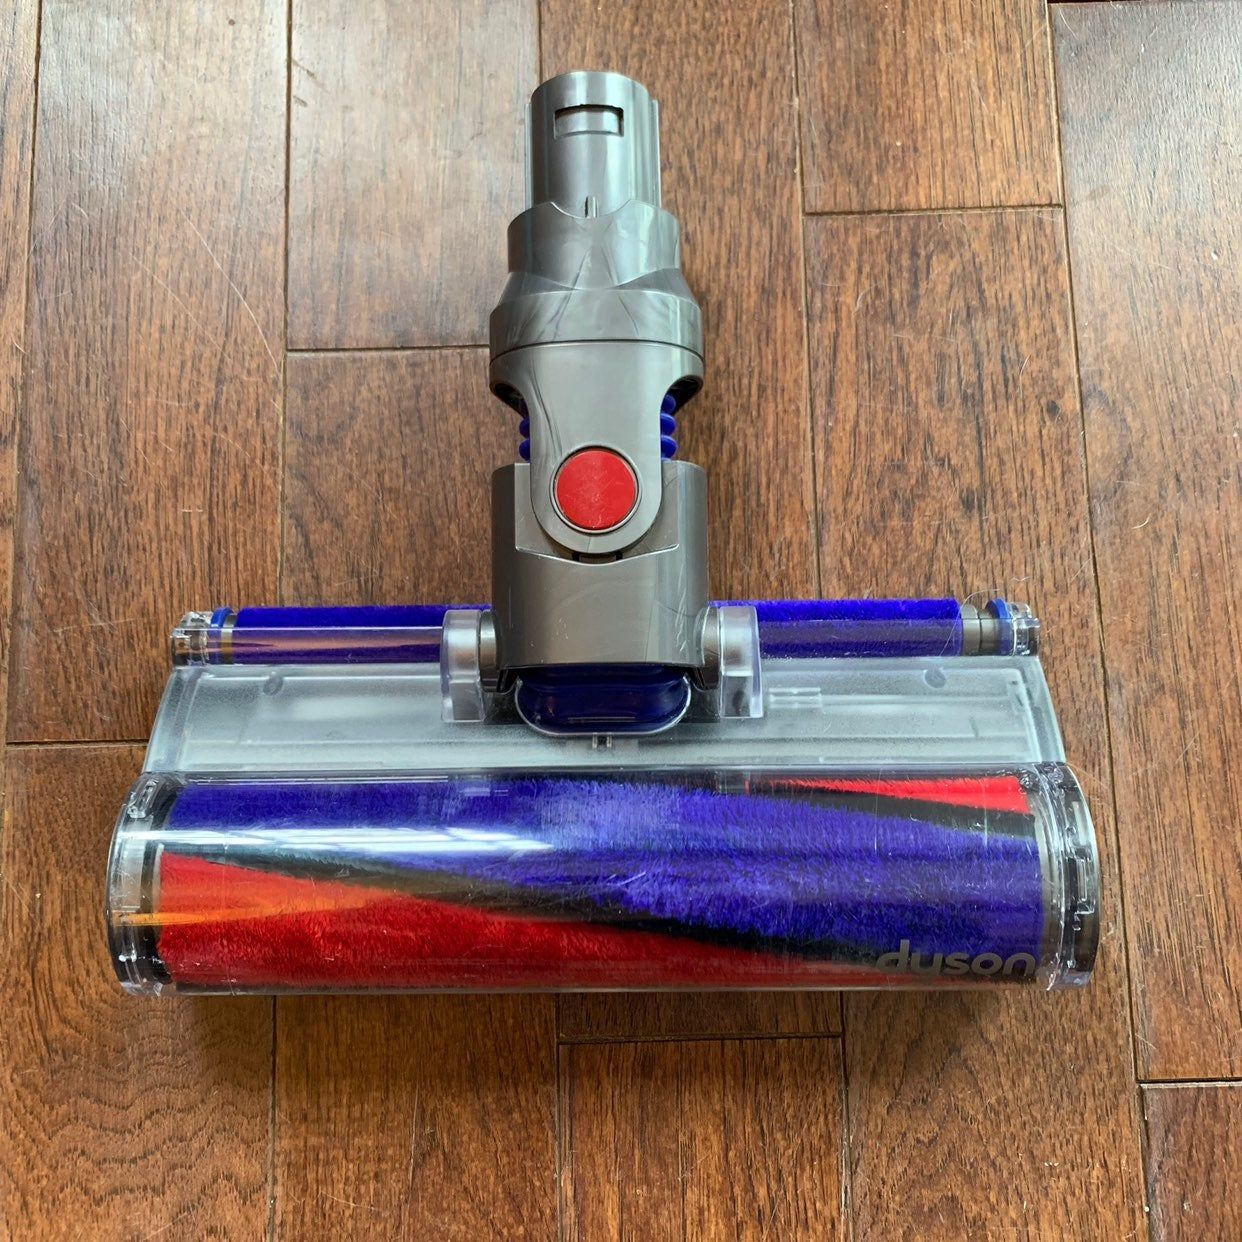 Dyson soft roller vaccum head with v6 models